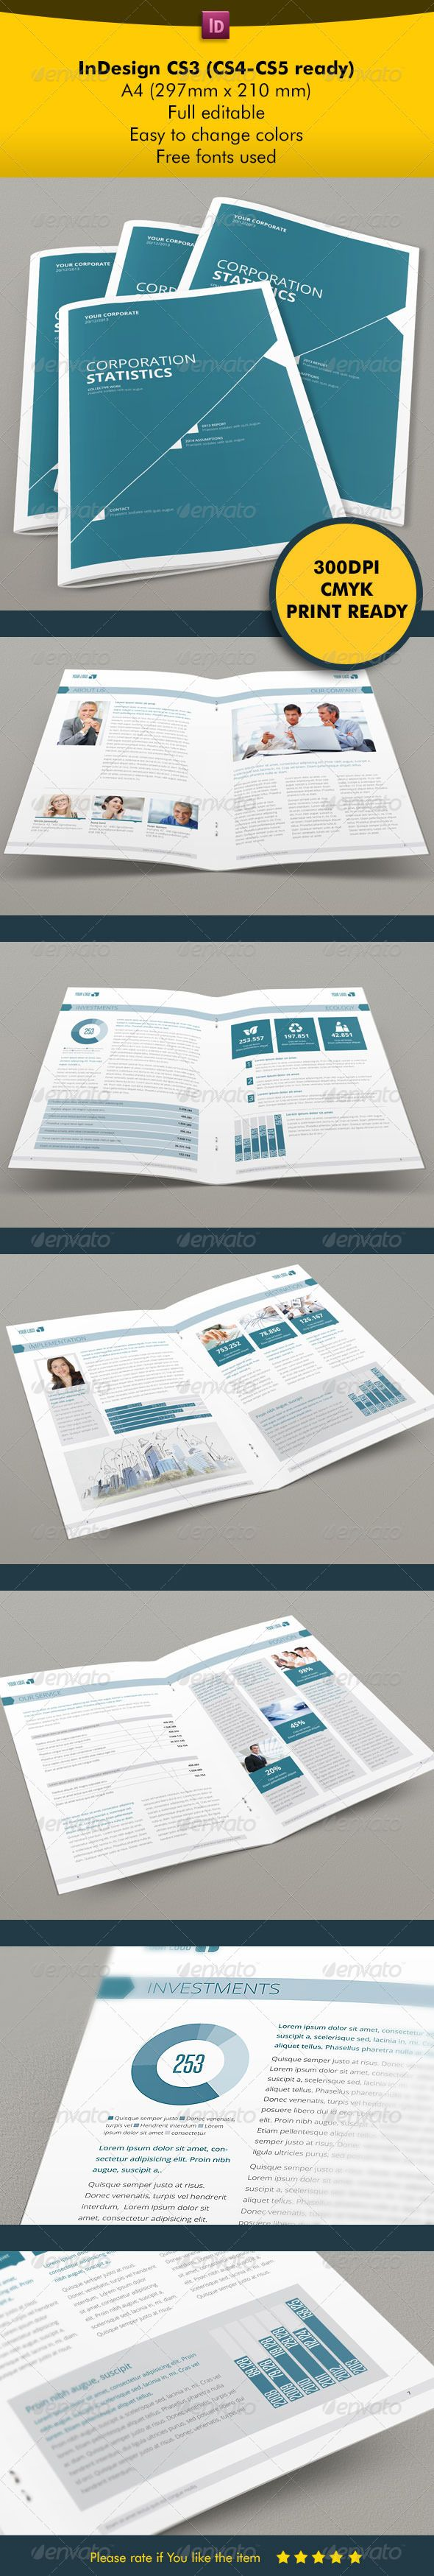 Best Corporate Proposal Images On   Proposal